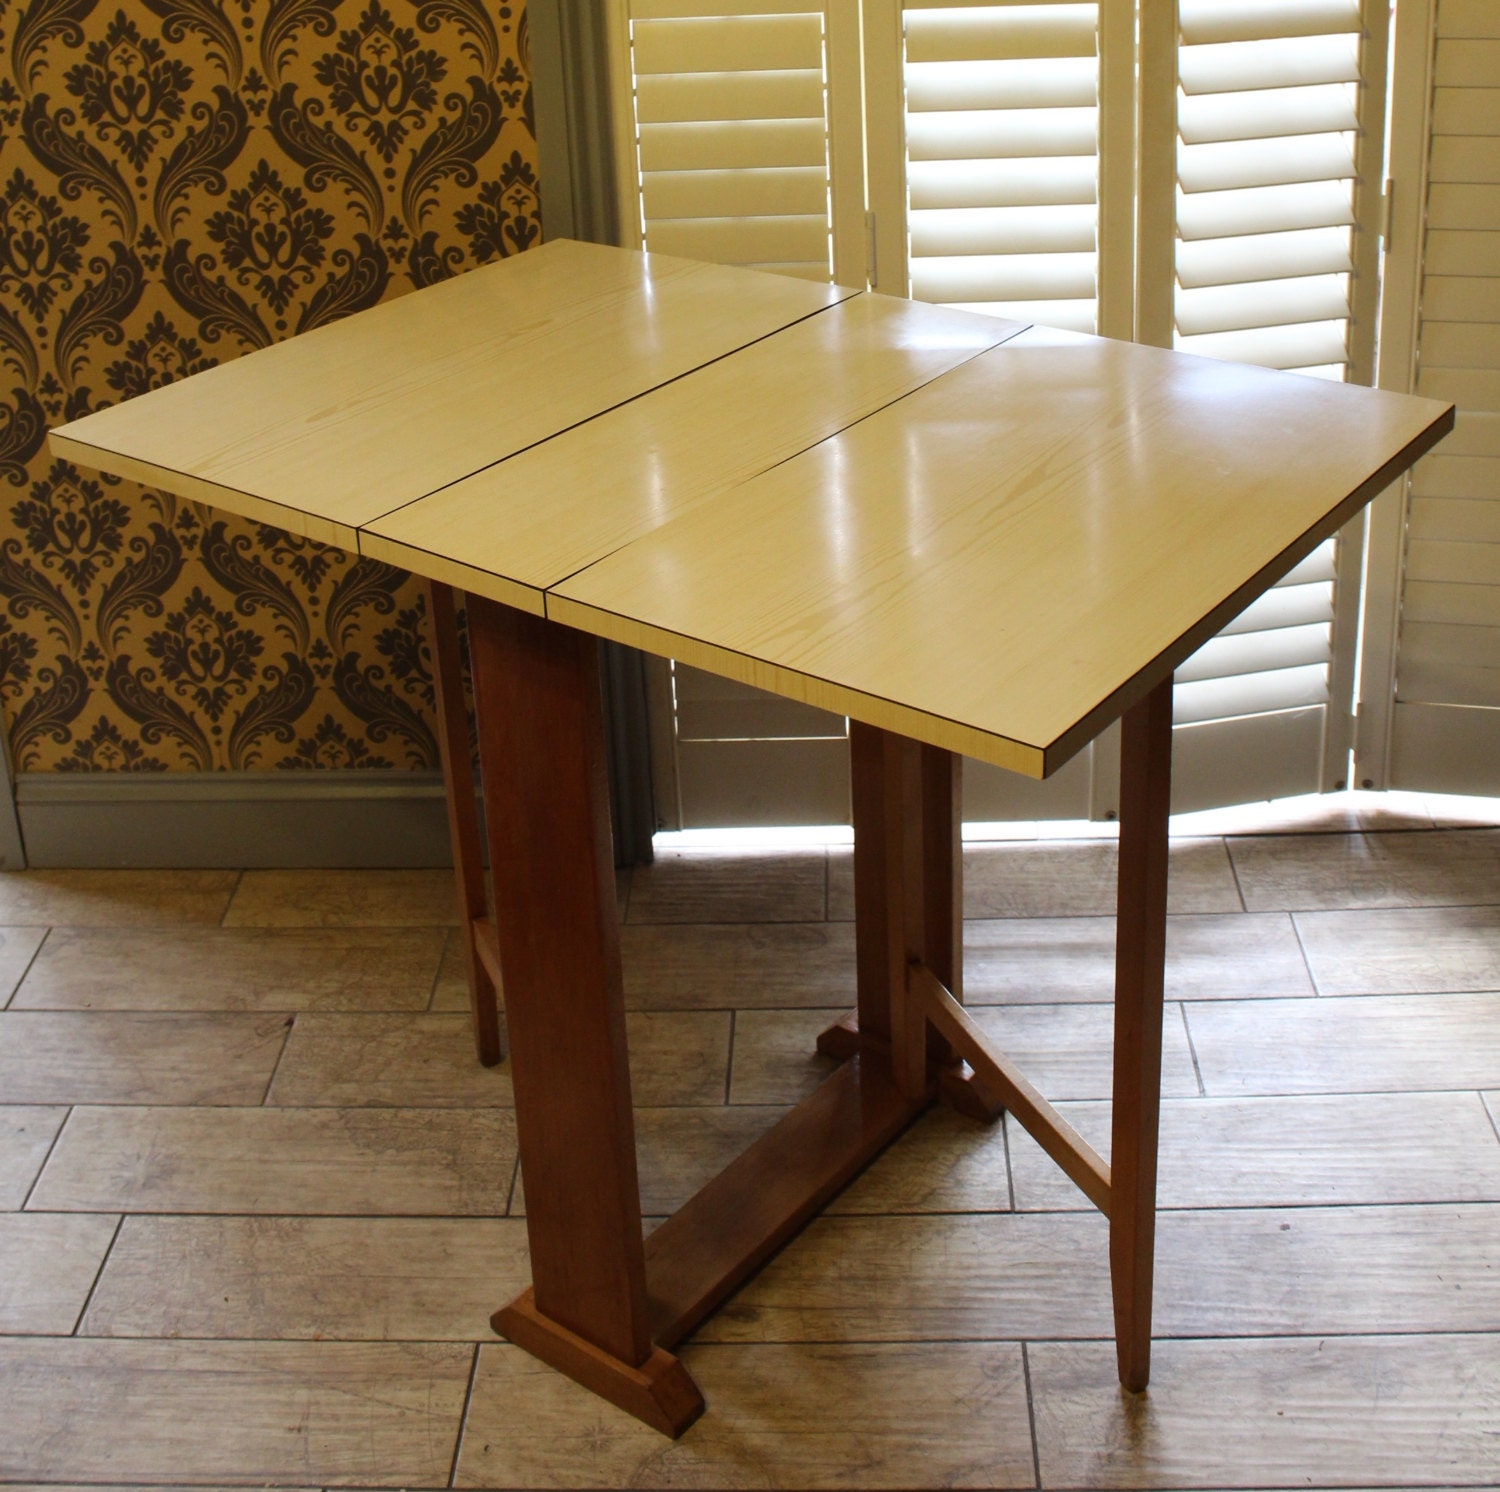 Vintage Retro Drop Leaf Formica Table Good By Bespokebydionne